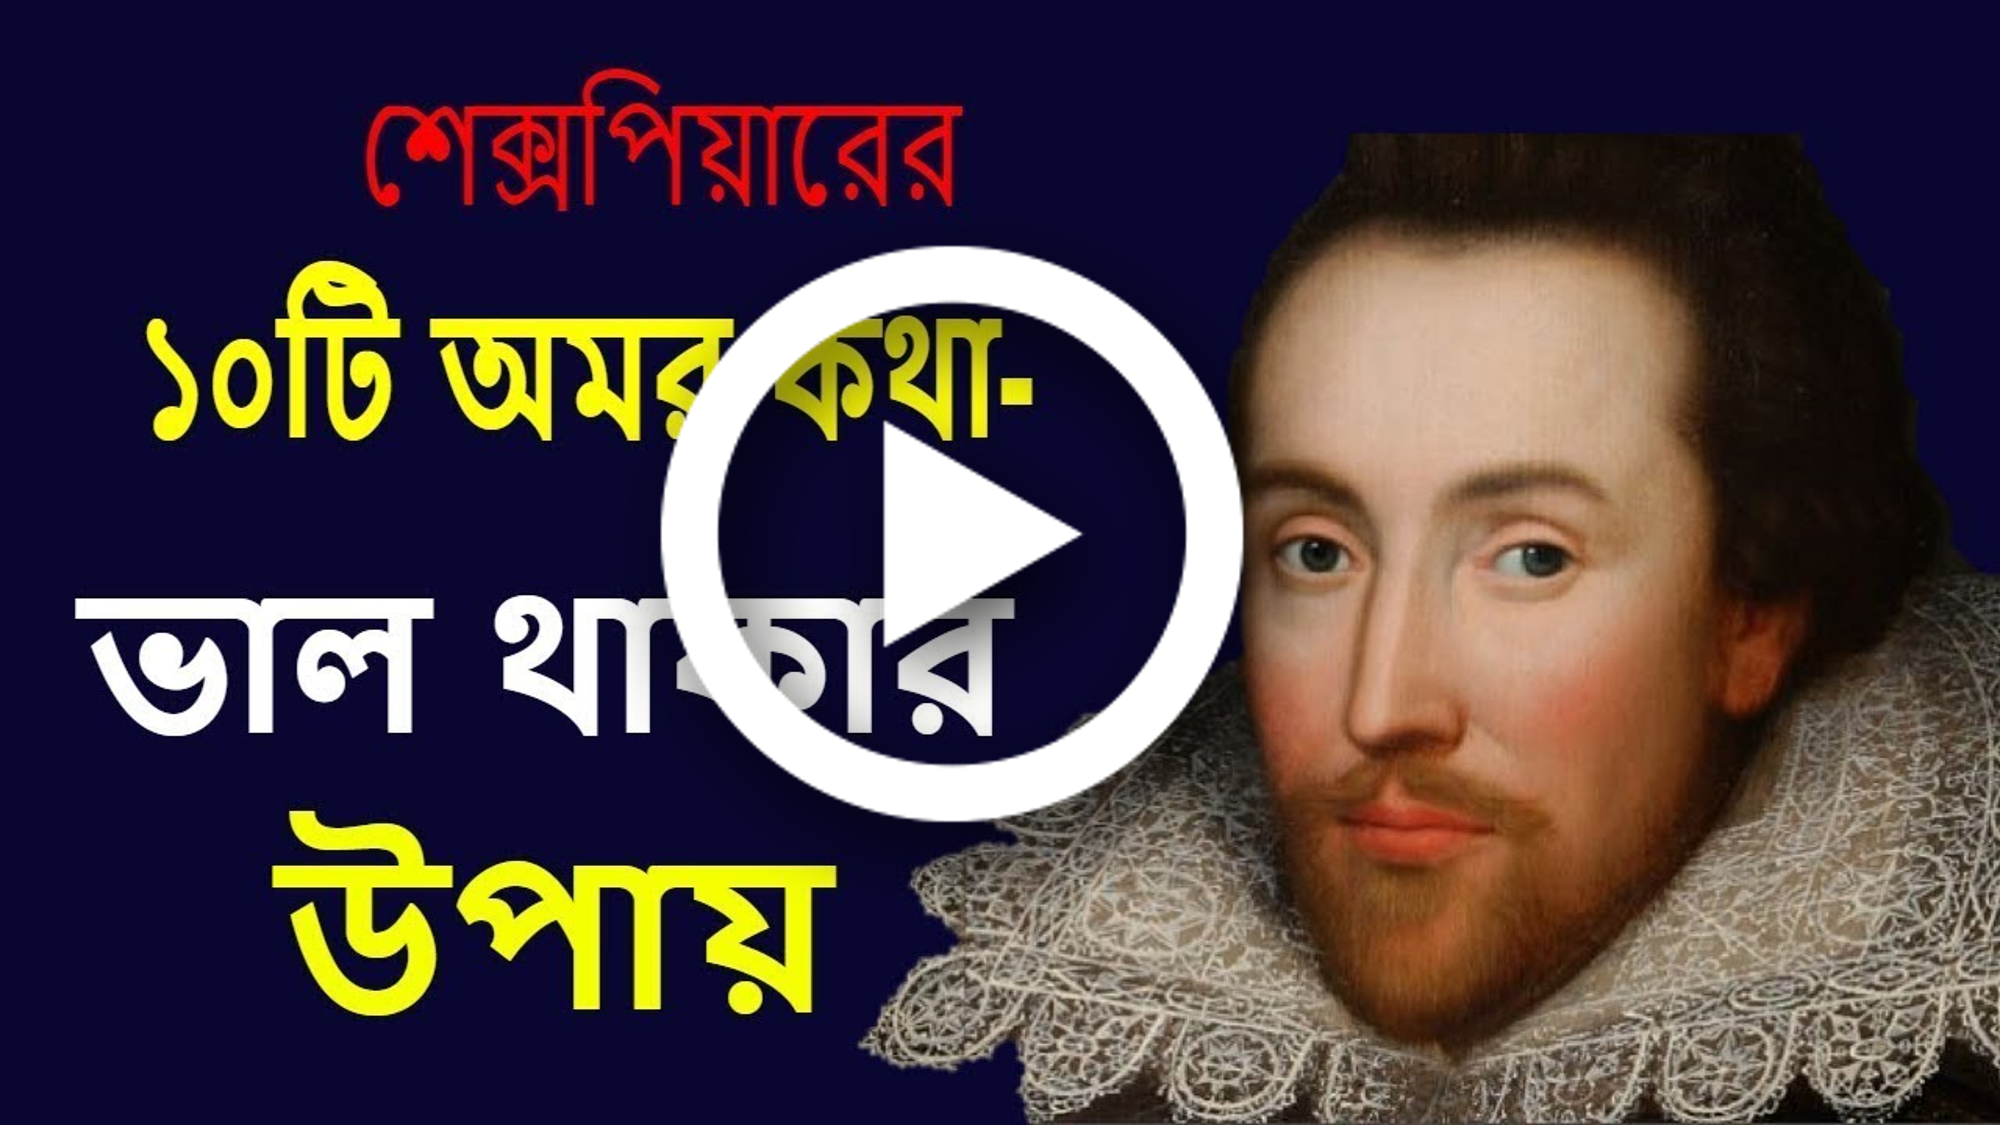 Citaten Shakespeare Apk : William shakespeare we know what we are but know not